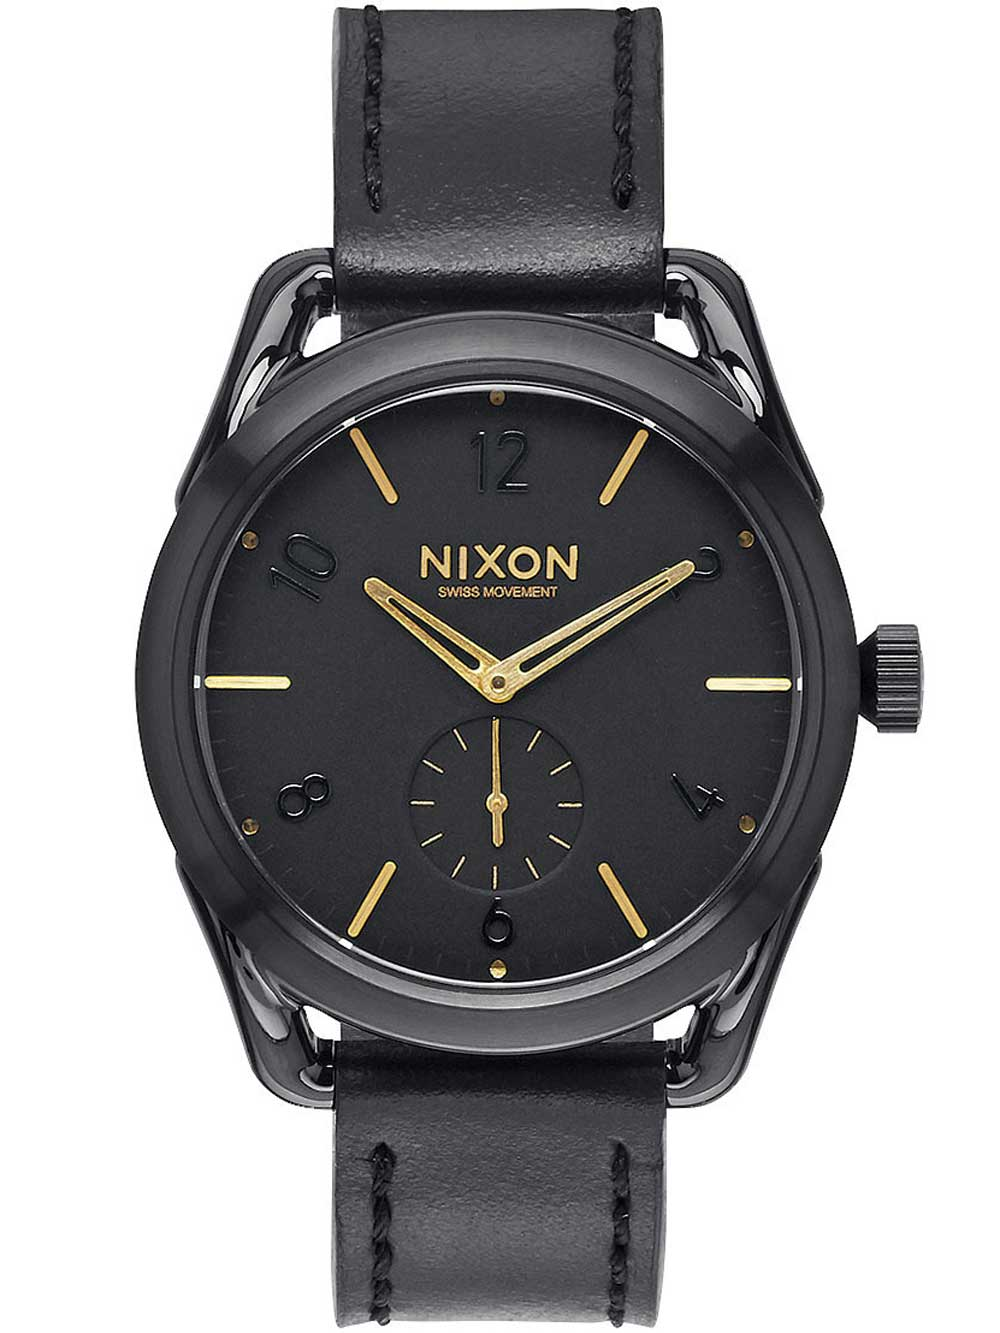 NIXON A459-010 C39 Leather Black Gold 39mm 10ATM